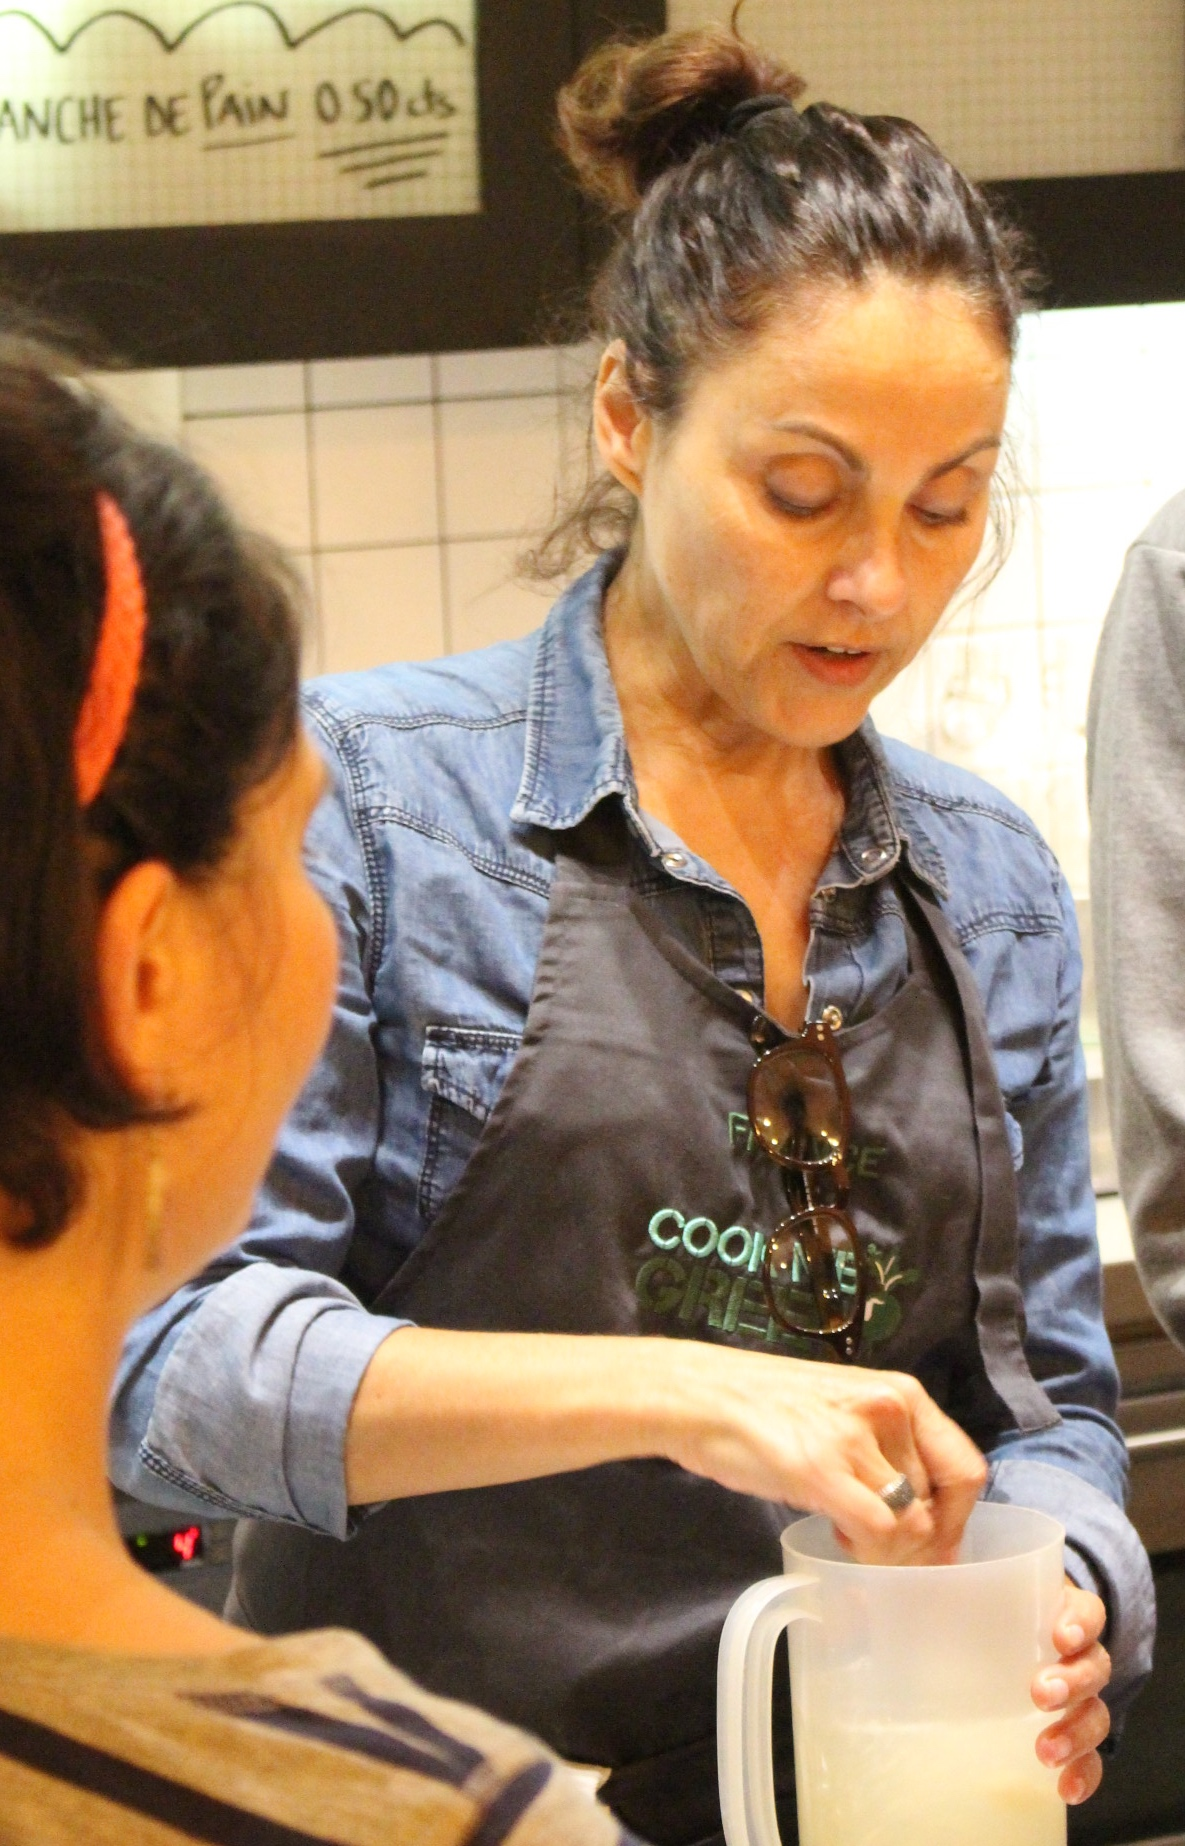 cookmegreen-france-franco-cuisine-ayurvedique